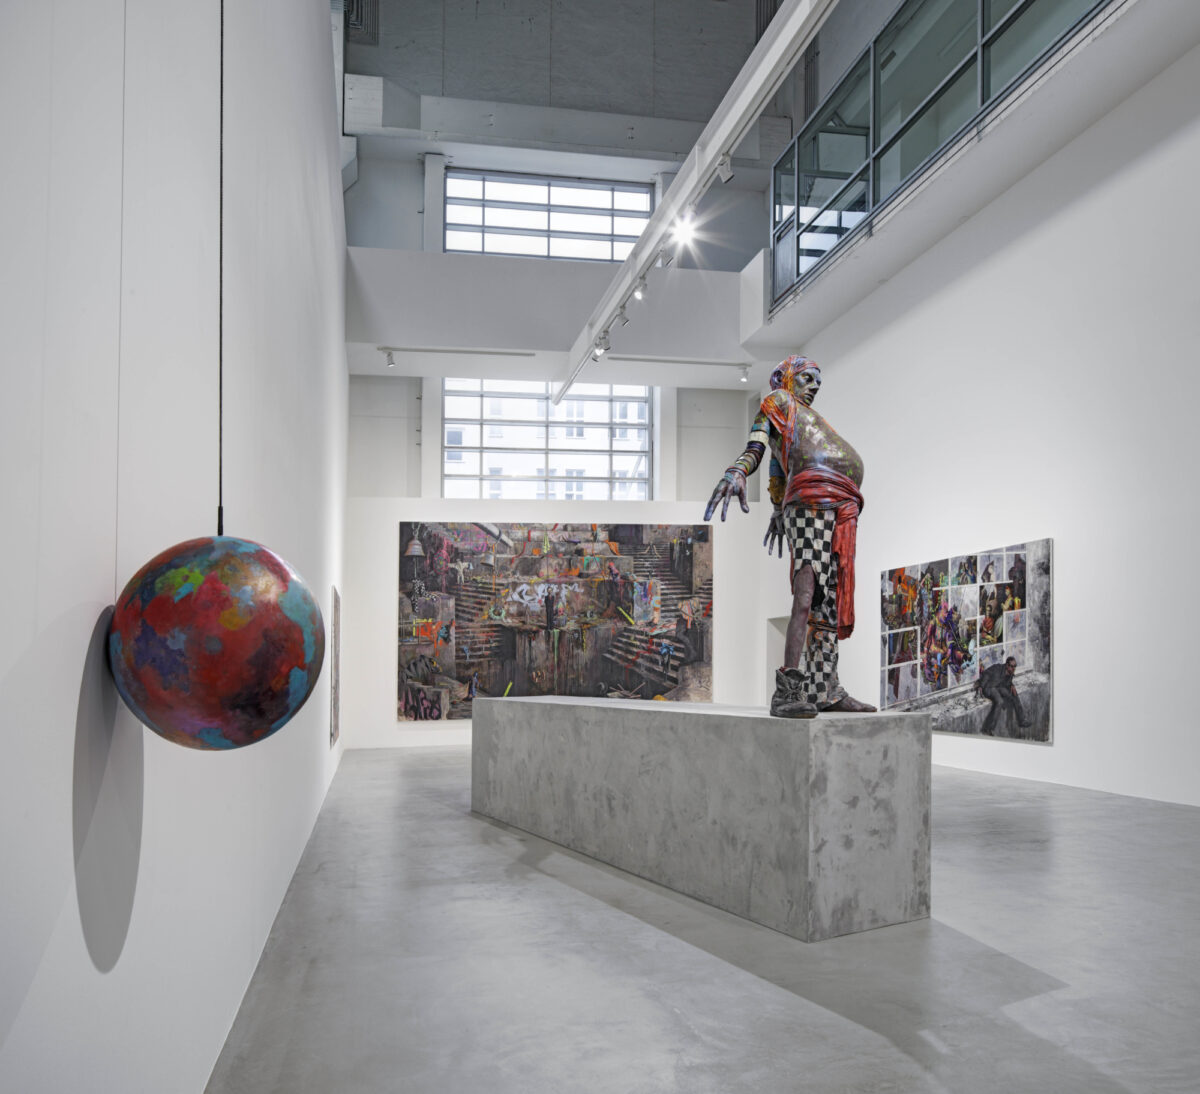 Jonas Burgert, Gift Gegen Zeit, 2012, Installation View, Courtesy the artist and Blain|Southern